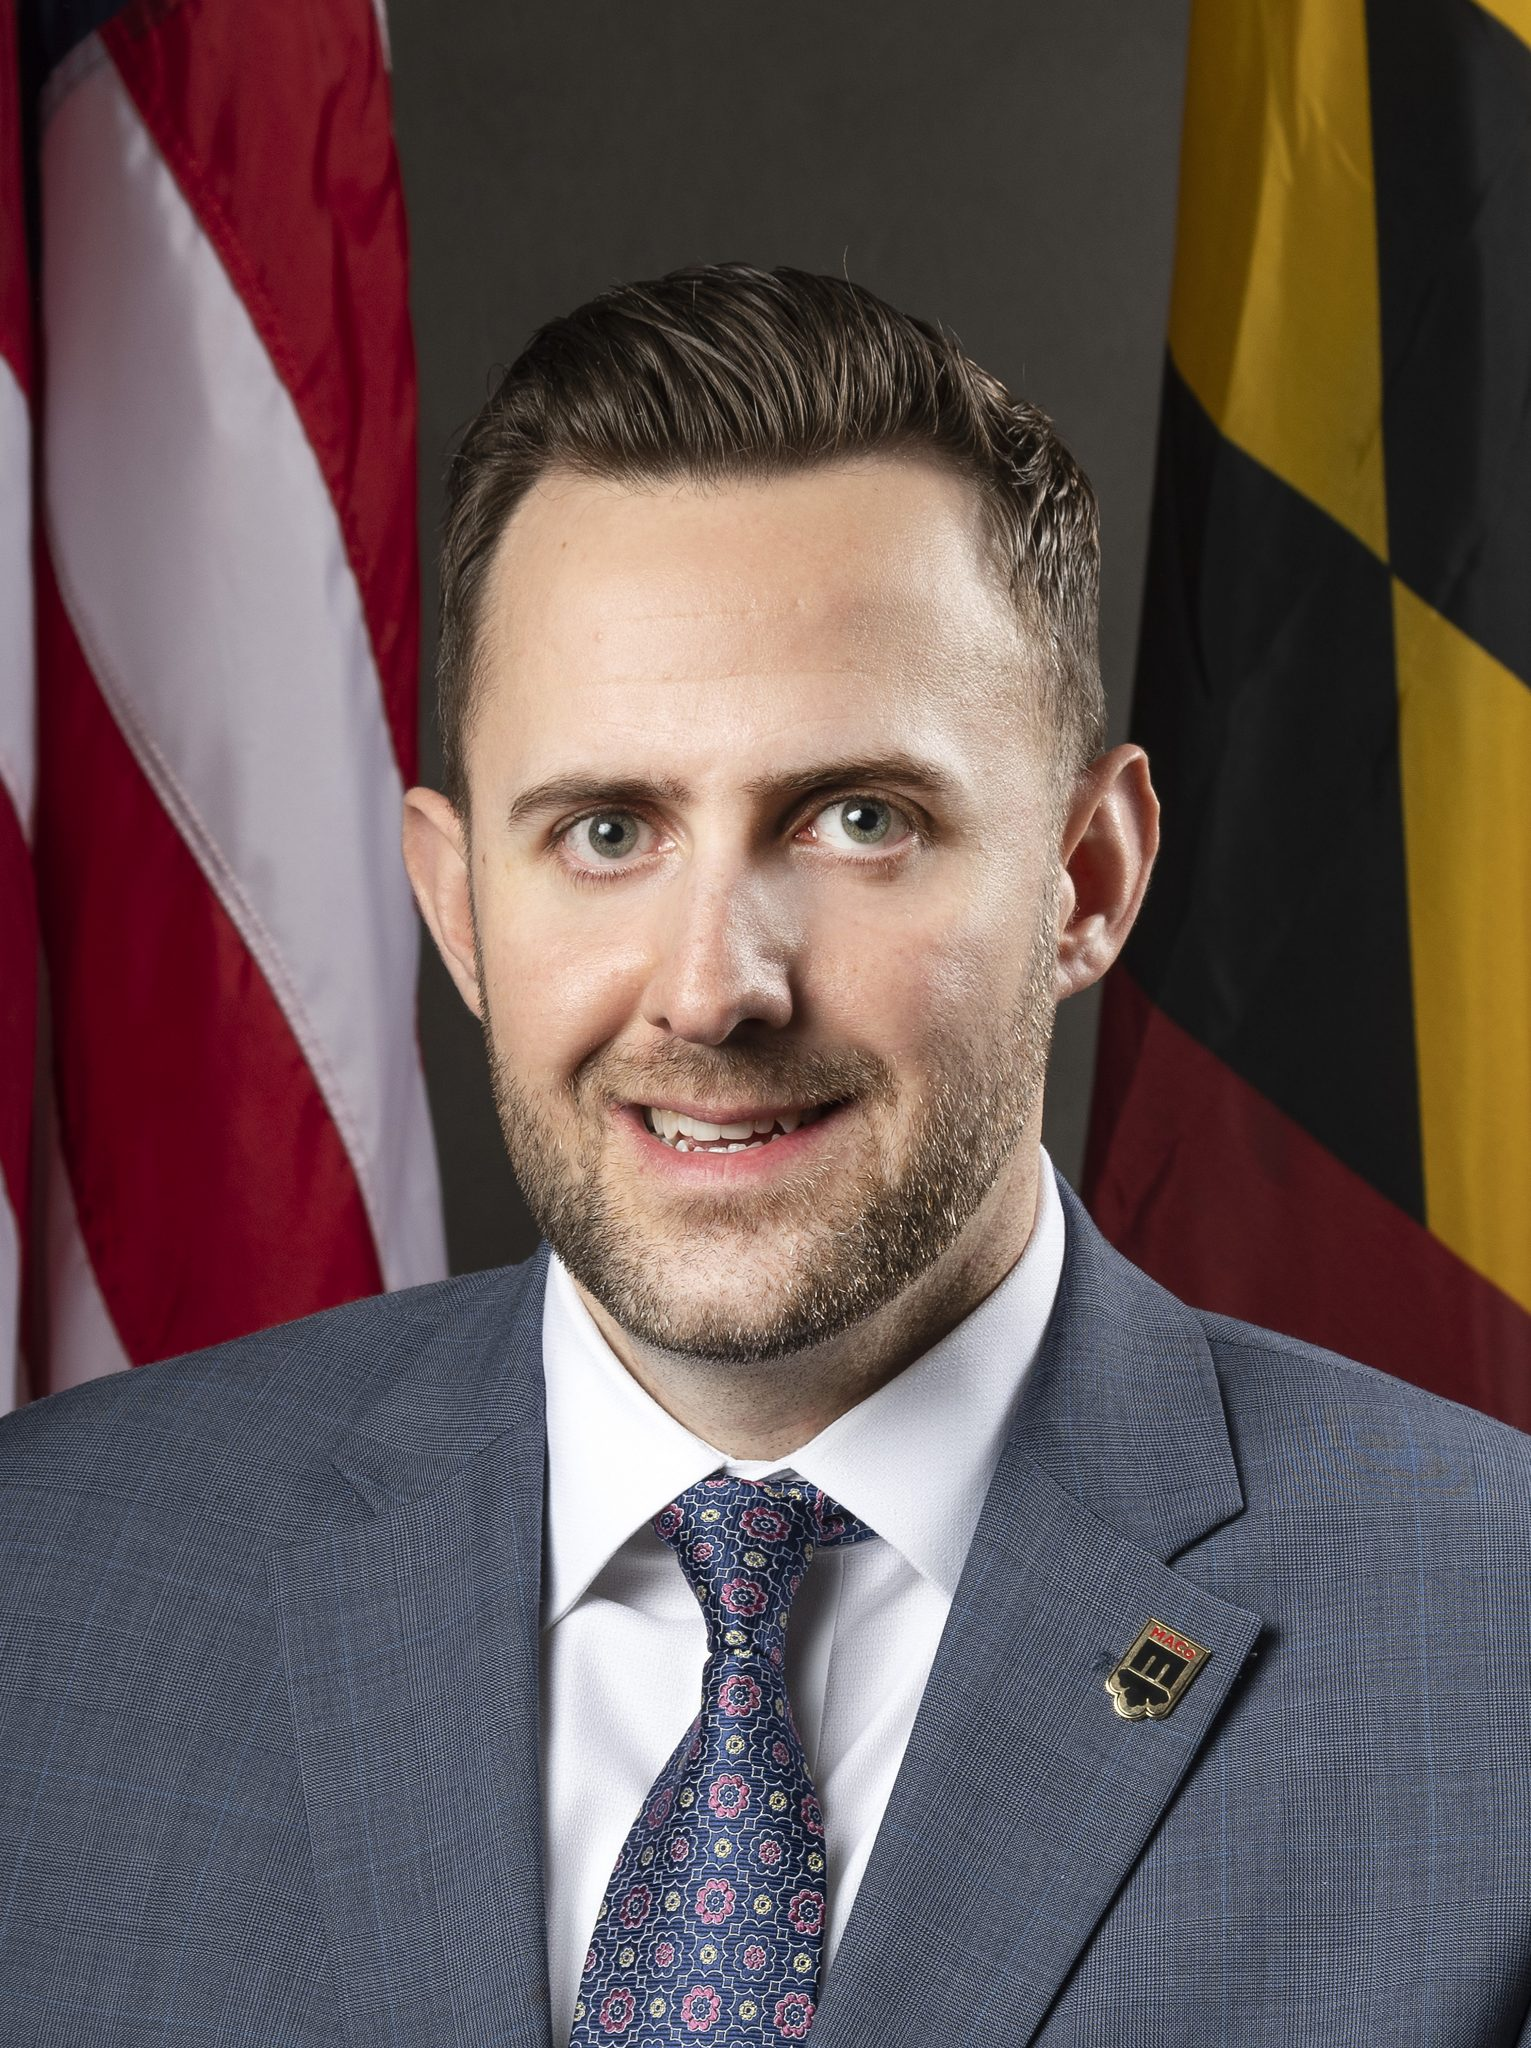 Kevin Kinnally to Lead MACo Policy Team as Legislative Director